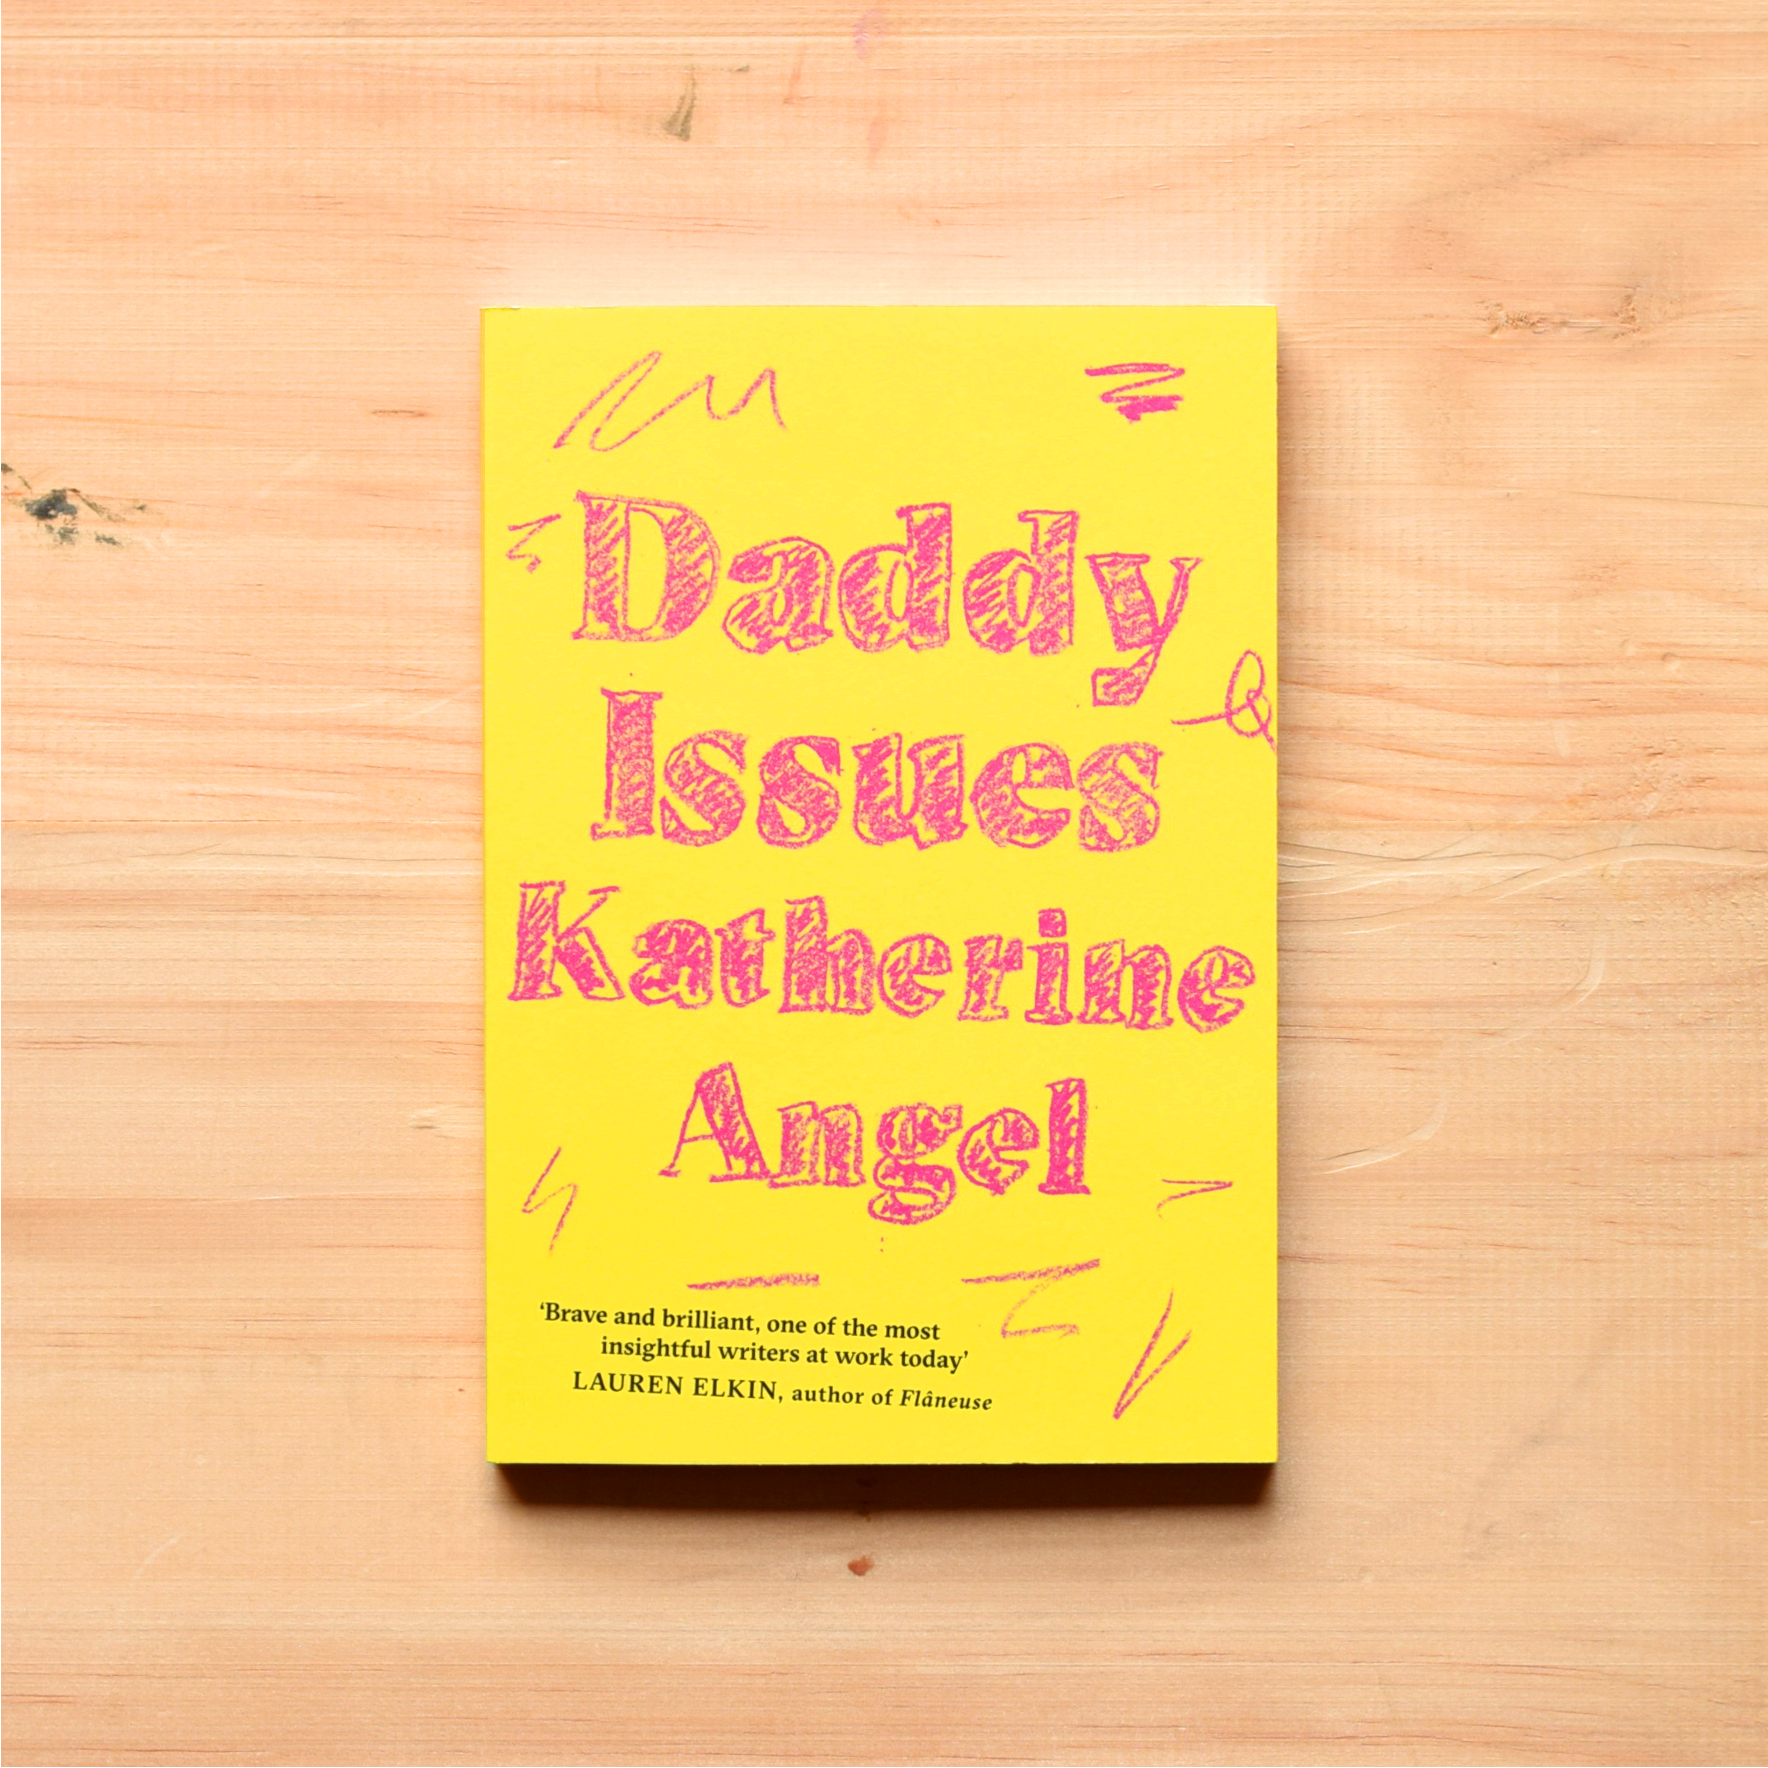 #7: Daddy Issues - By Katherine Angel